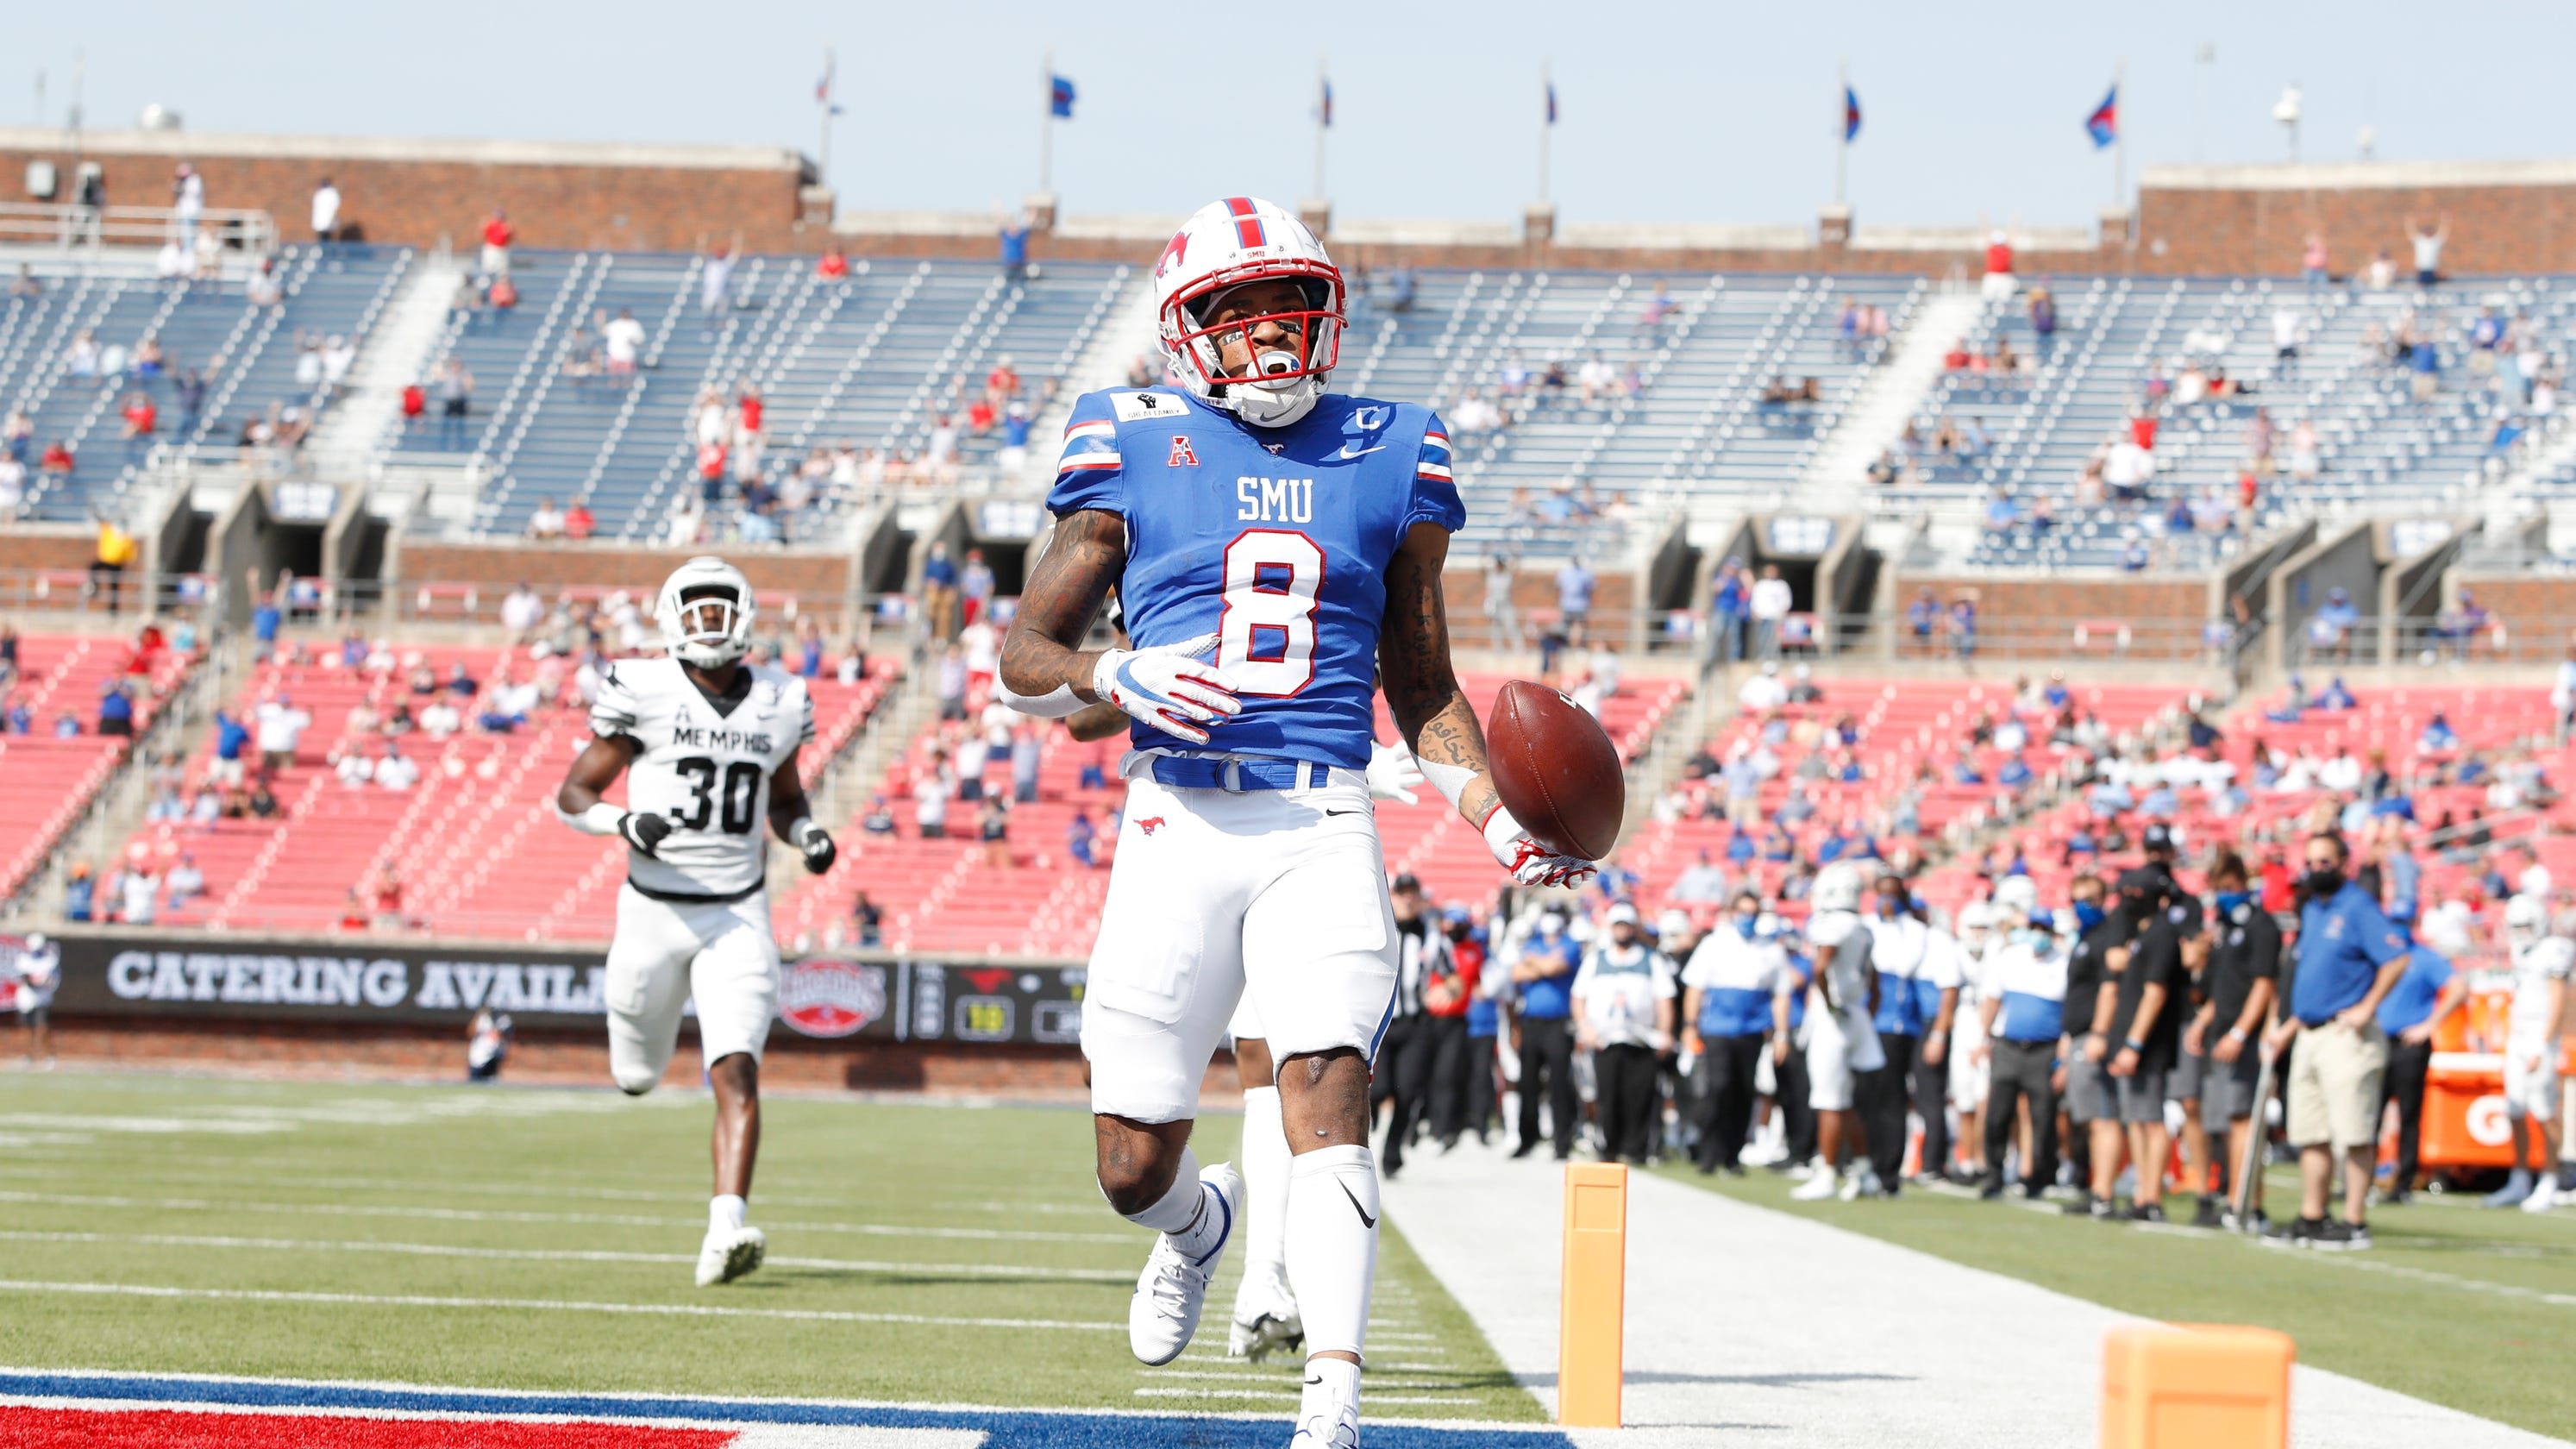 SMU student section removed from game seemingly for failure to adhere to COVID-19 guidelines